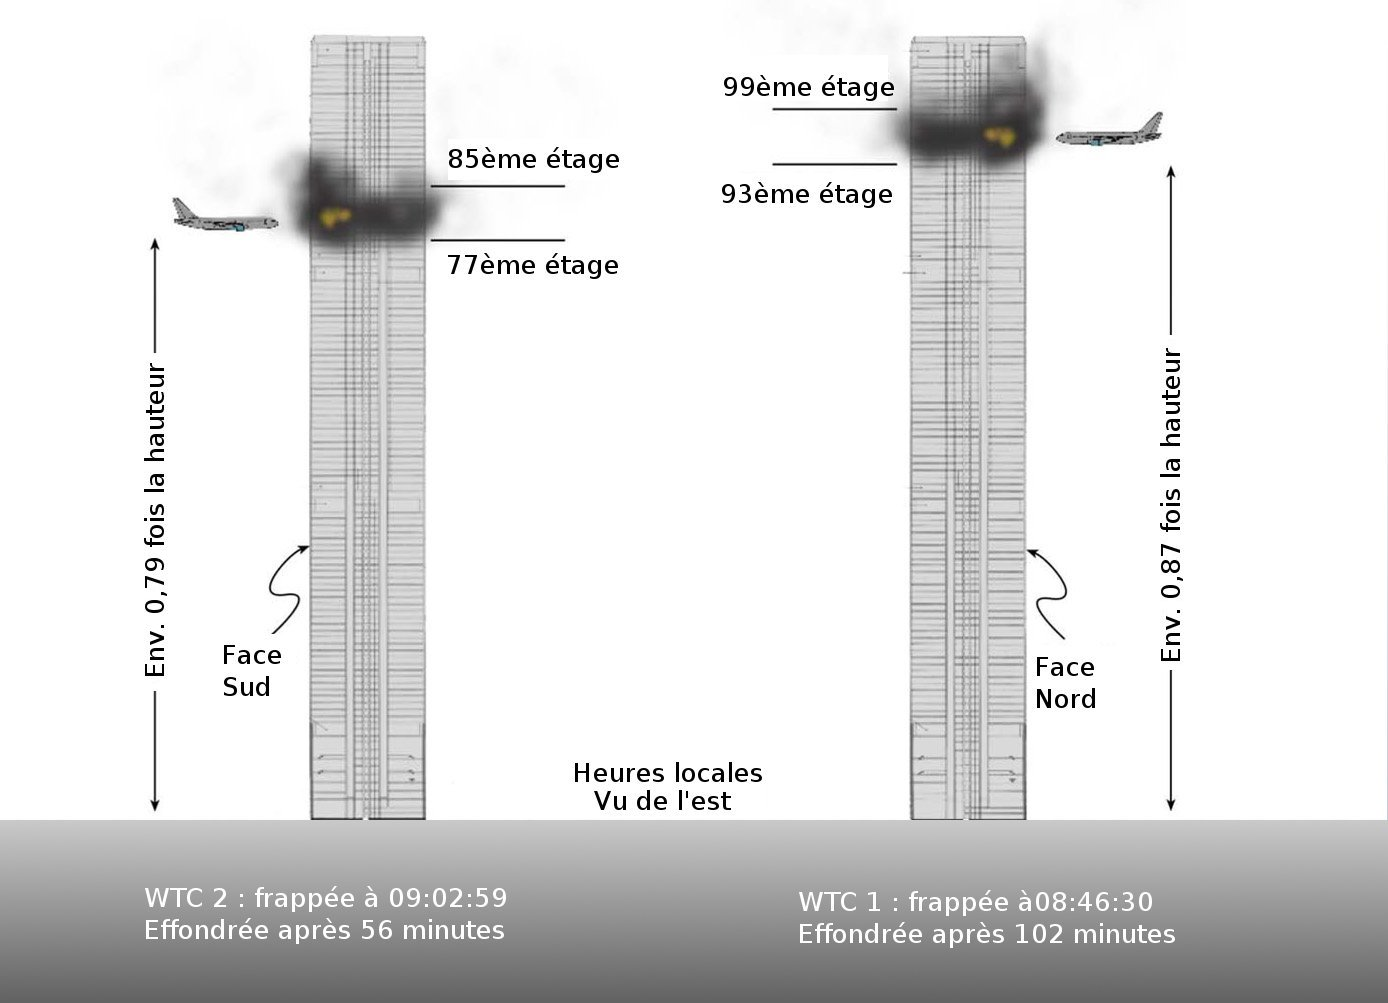 http://upload.wikimedia.org/wikipedia/commons/9/9b/World_Trade_Center_9-11_Attacks_Illustration_with_Vertical_Impact_Locations_frdeuterium360.jpg